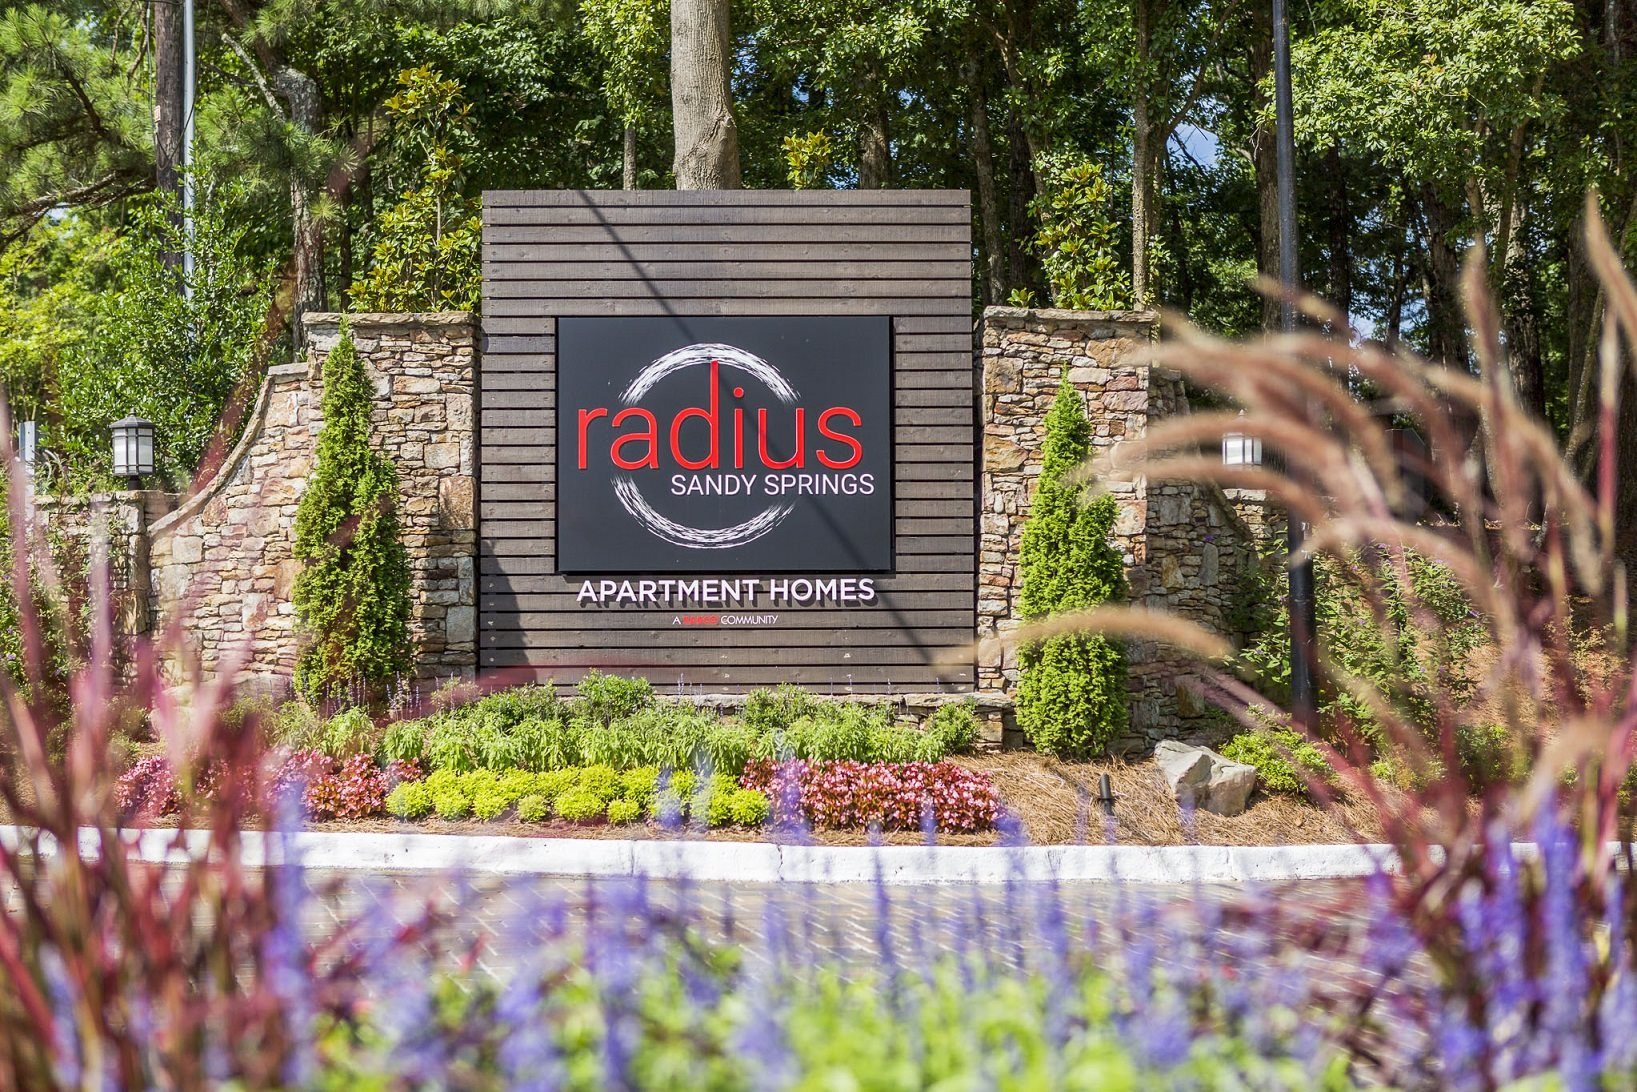 Photos and video of radius sandy springs in atlanta ga atlanta photogallery 63 mightylinksfo